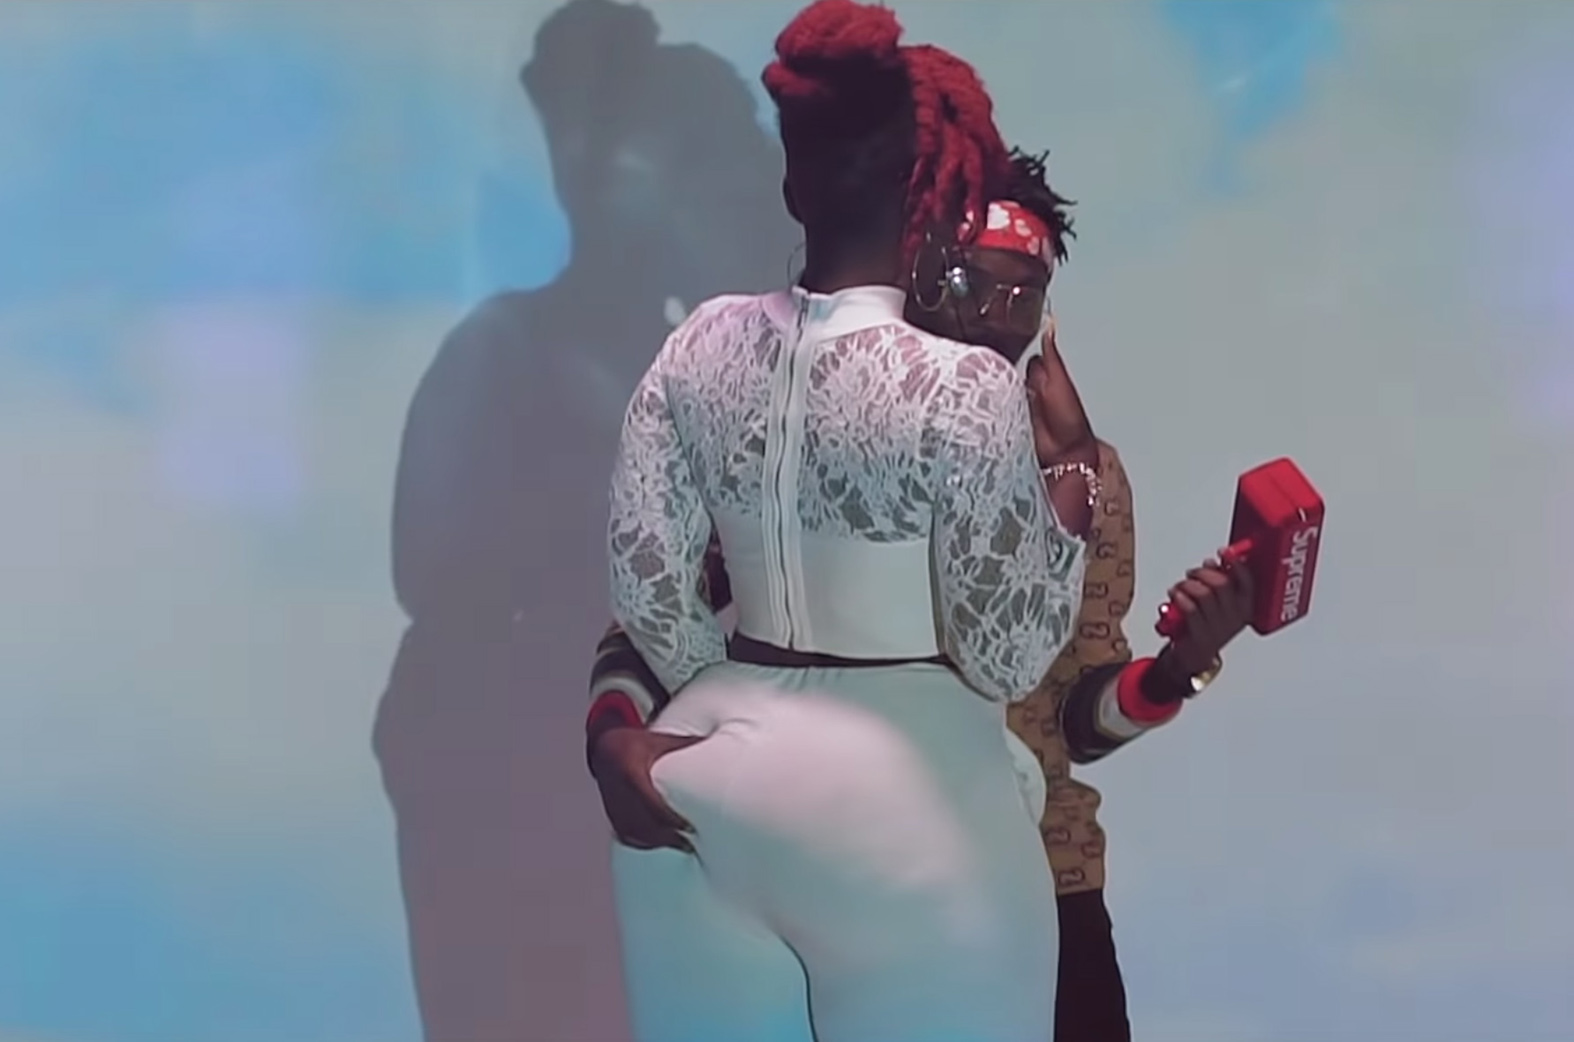 Video: Do That Tin by Richy Rymz feat. Ms Forson